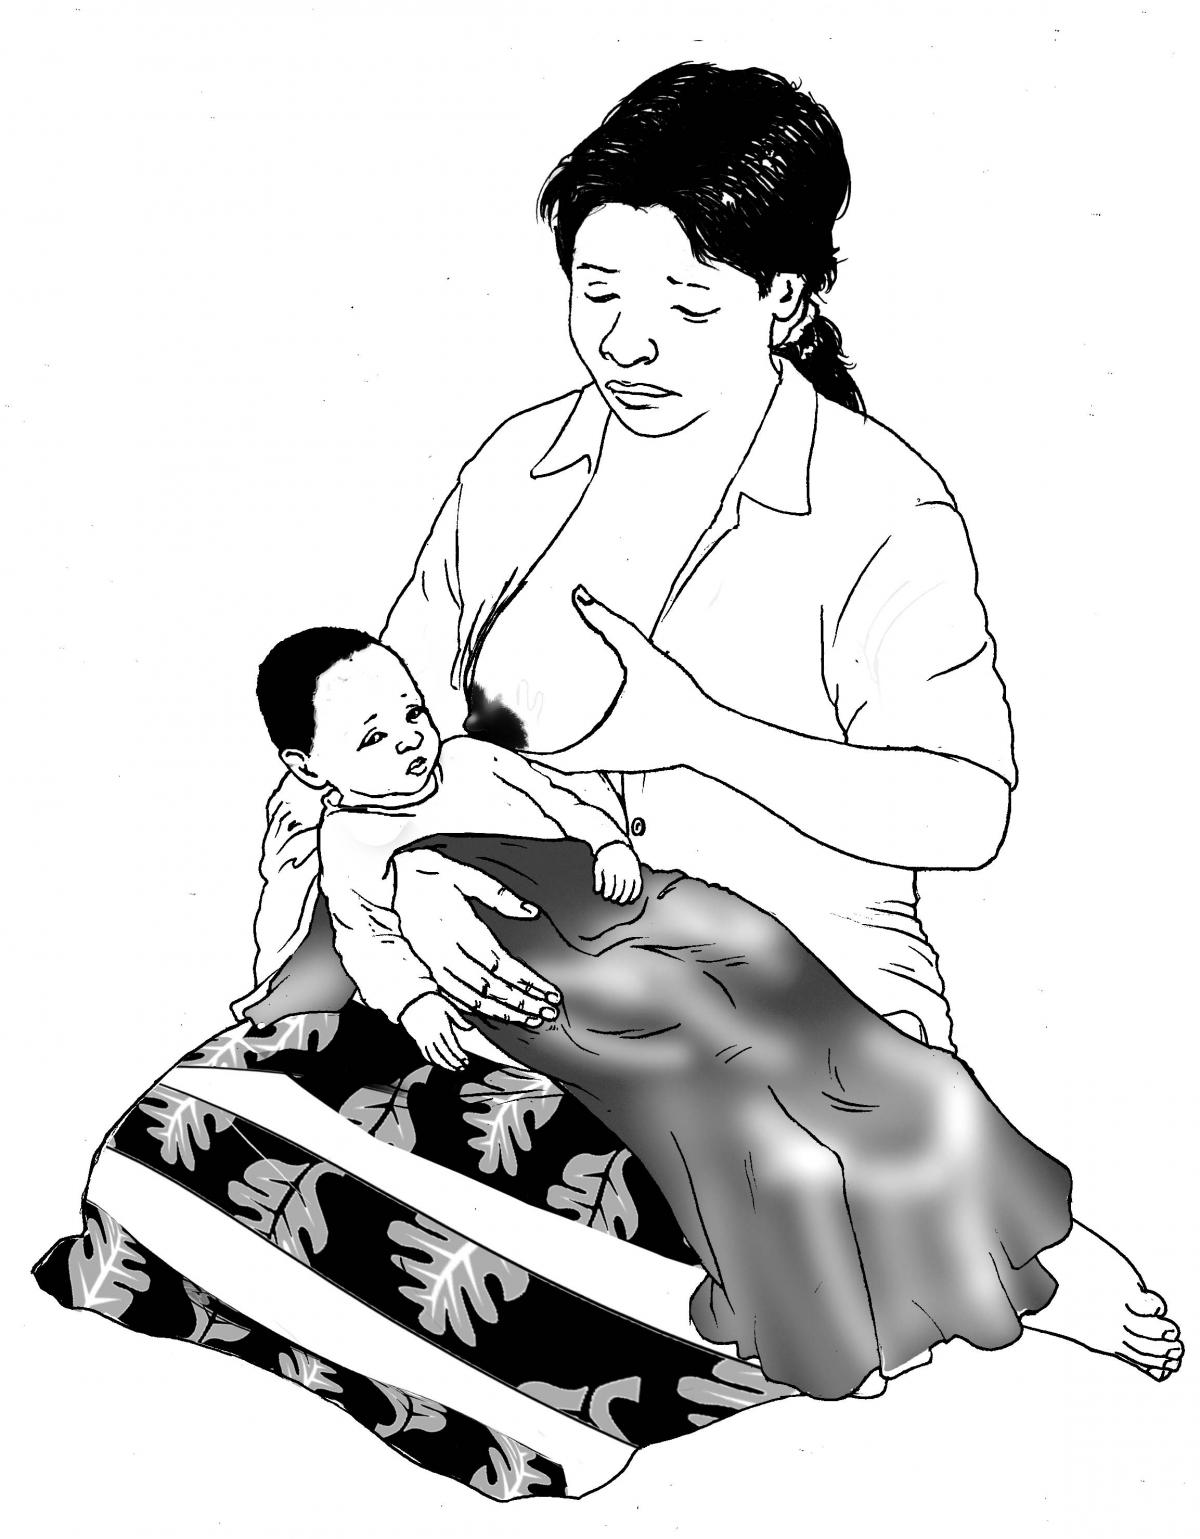 Sick Baby Nutrition - Sick baby refuses to breastfeed - 02 - Non-country specific